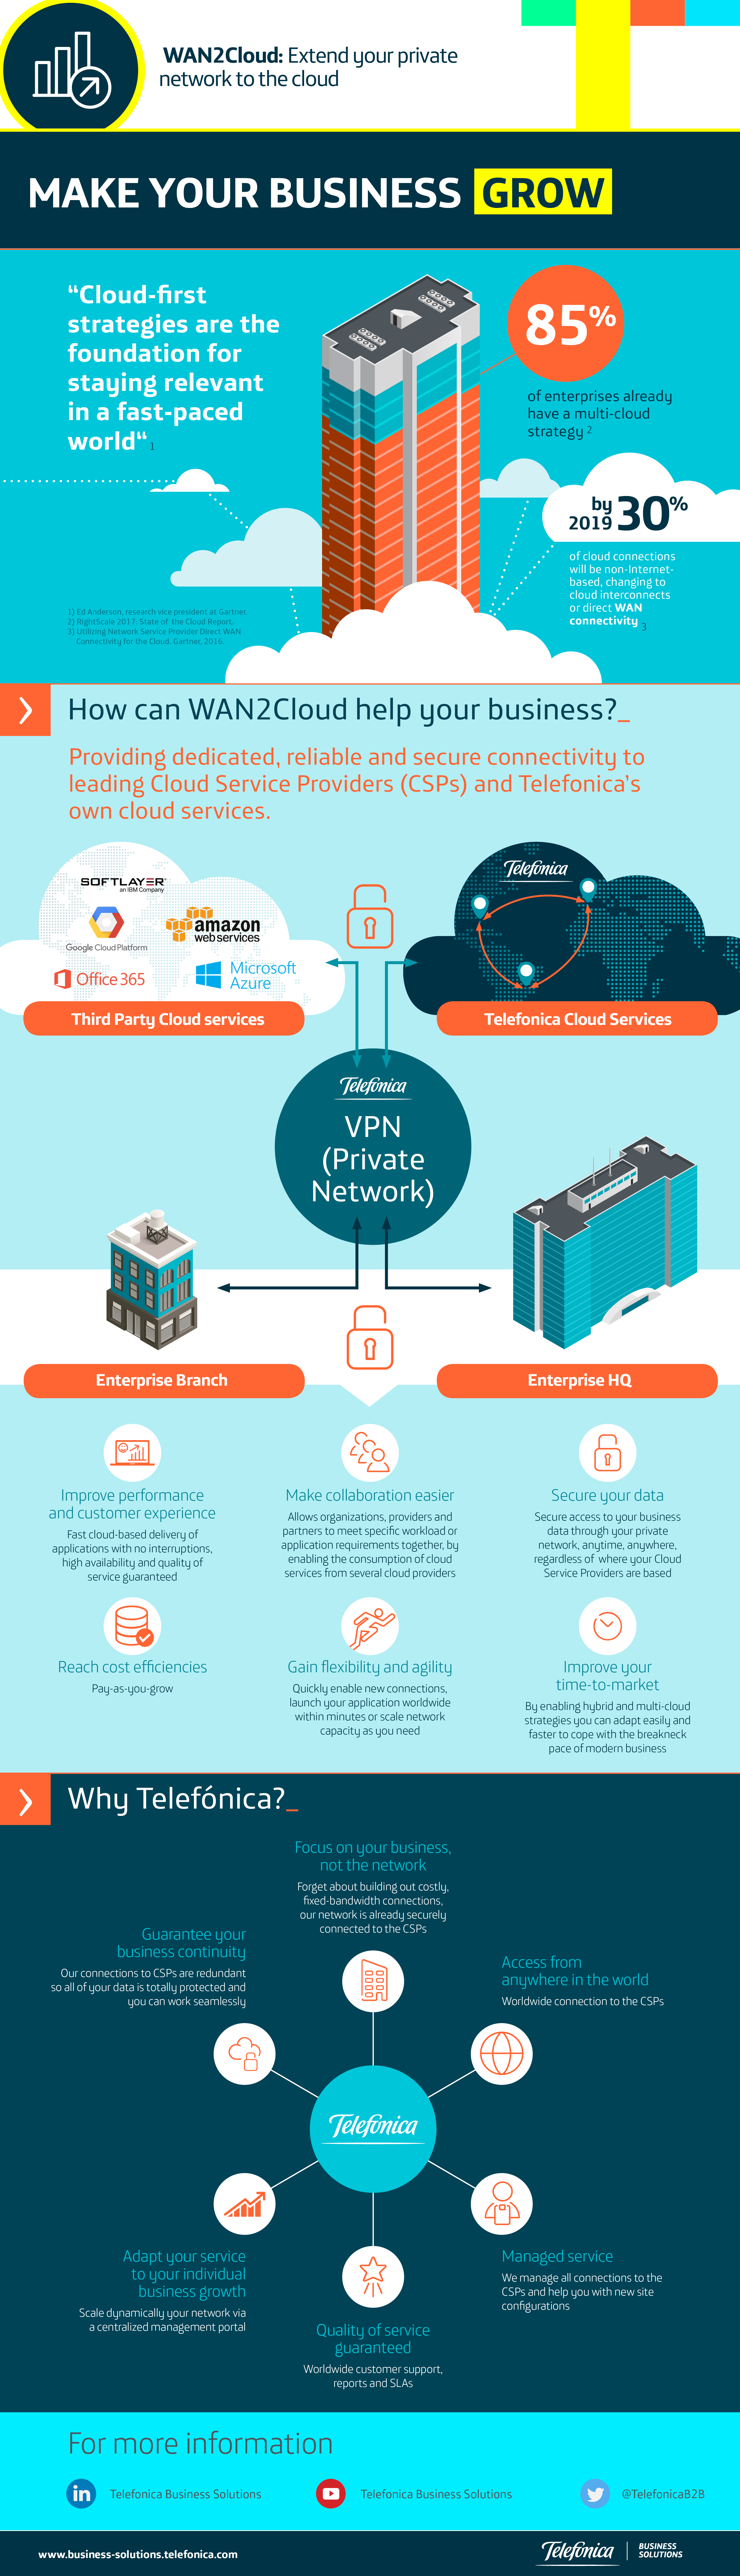 WAN2Cloud: Extend your private network to the cloud